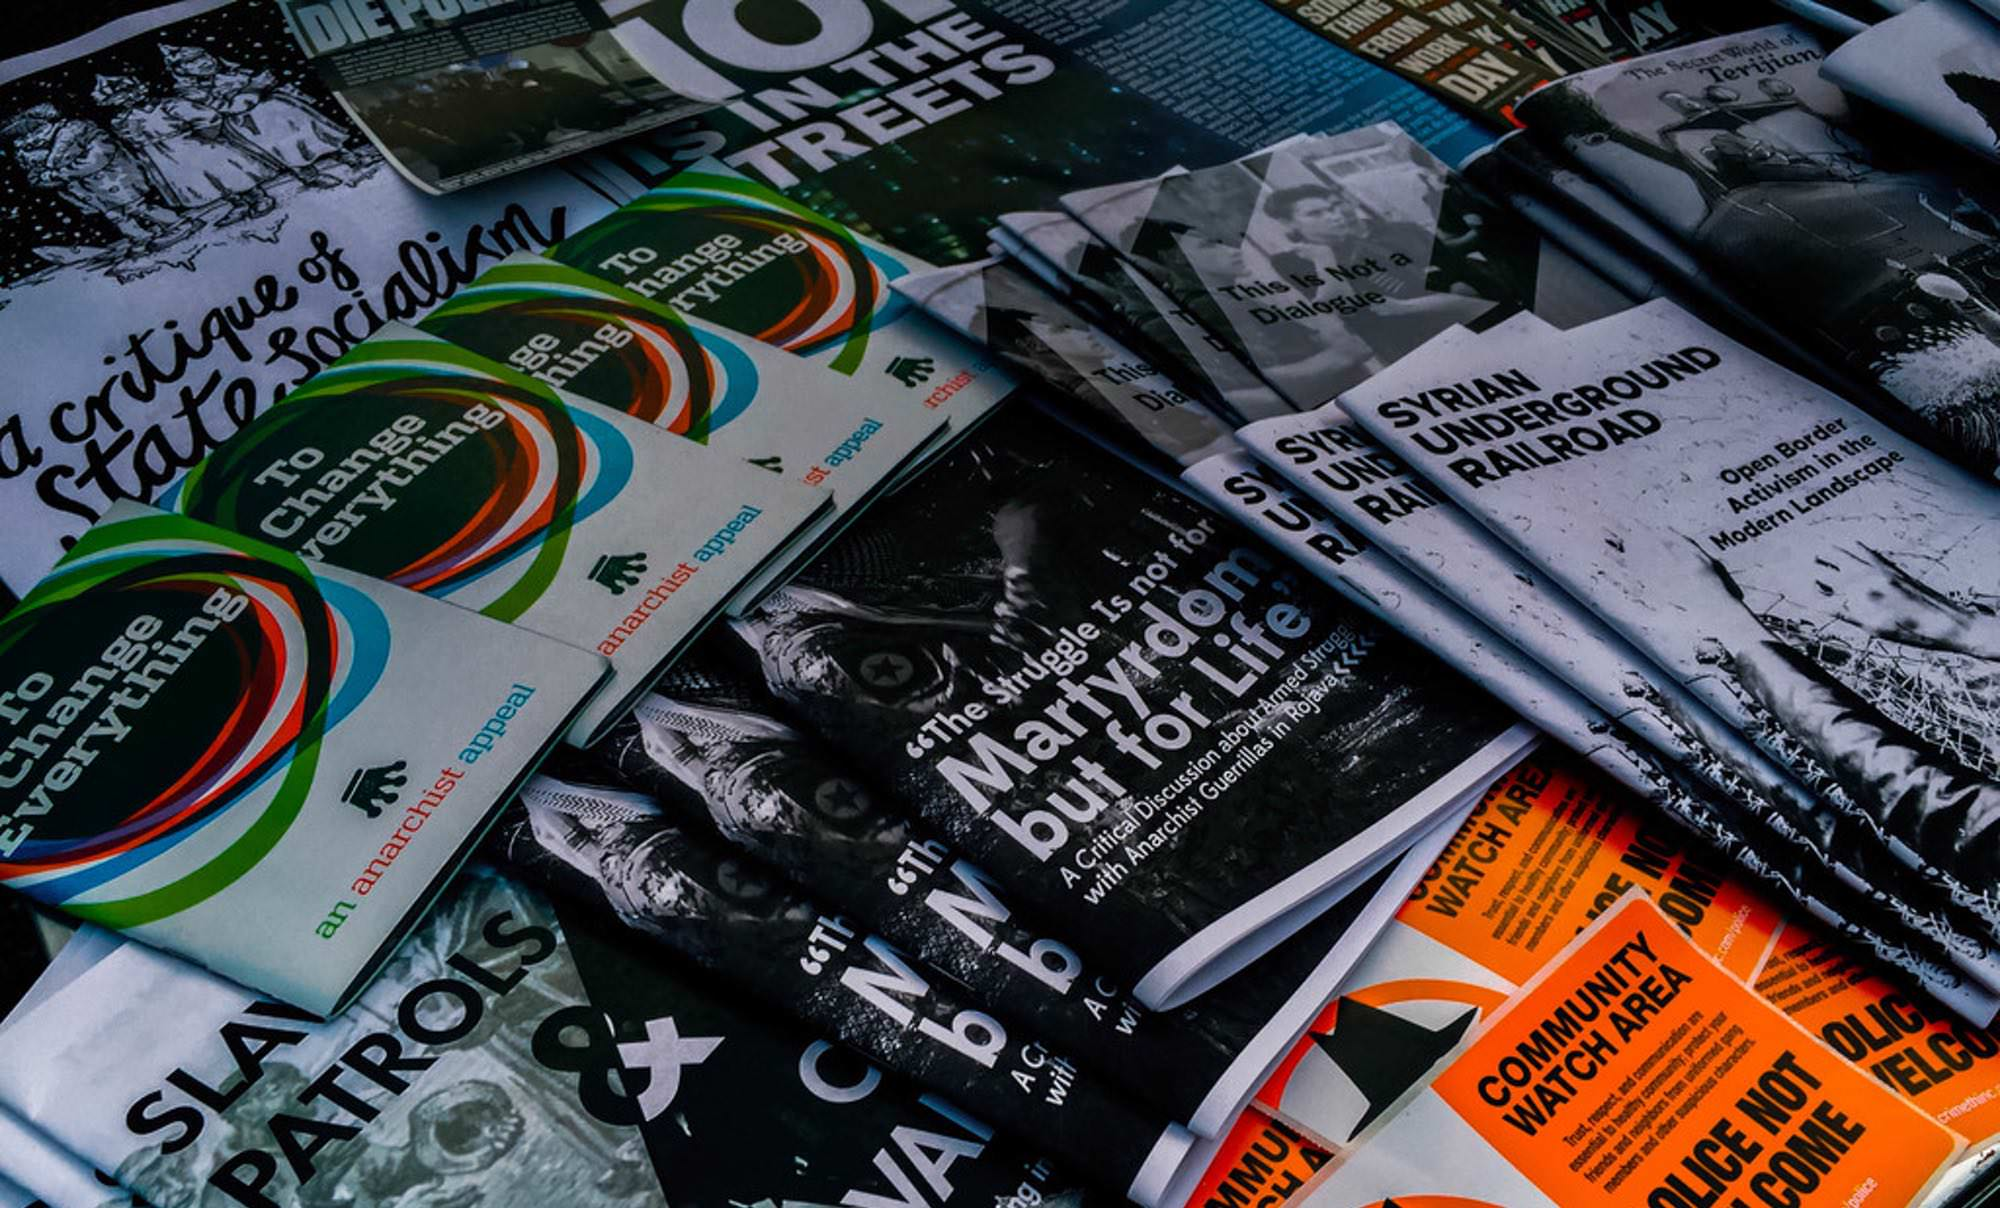 Zines posters and stickers